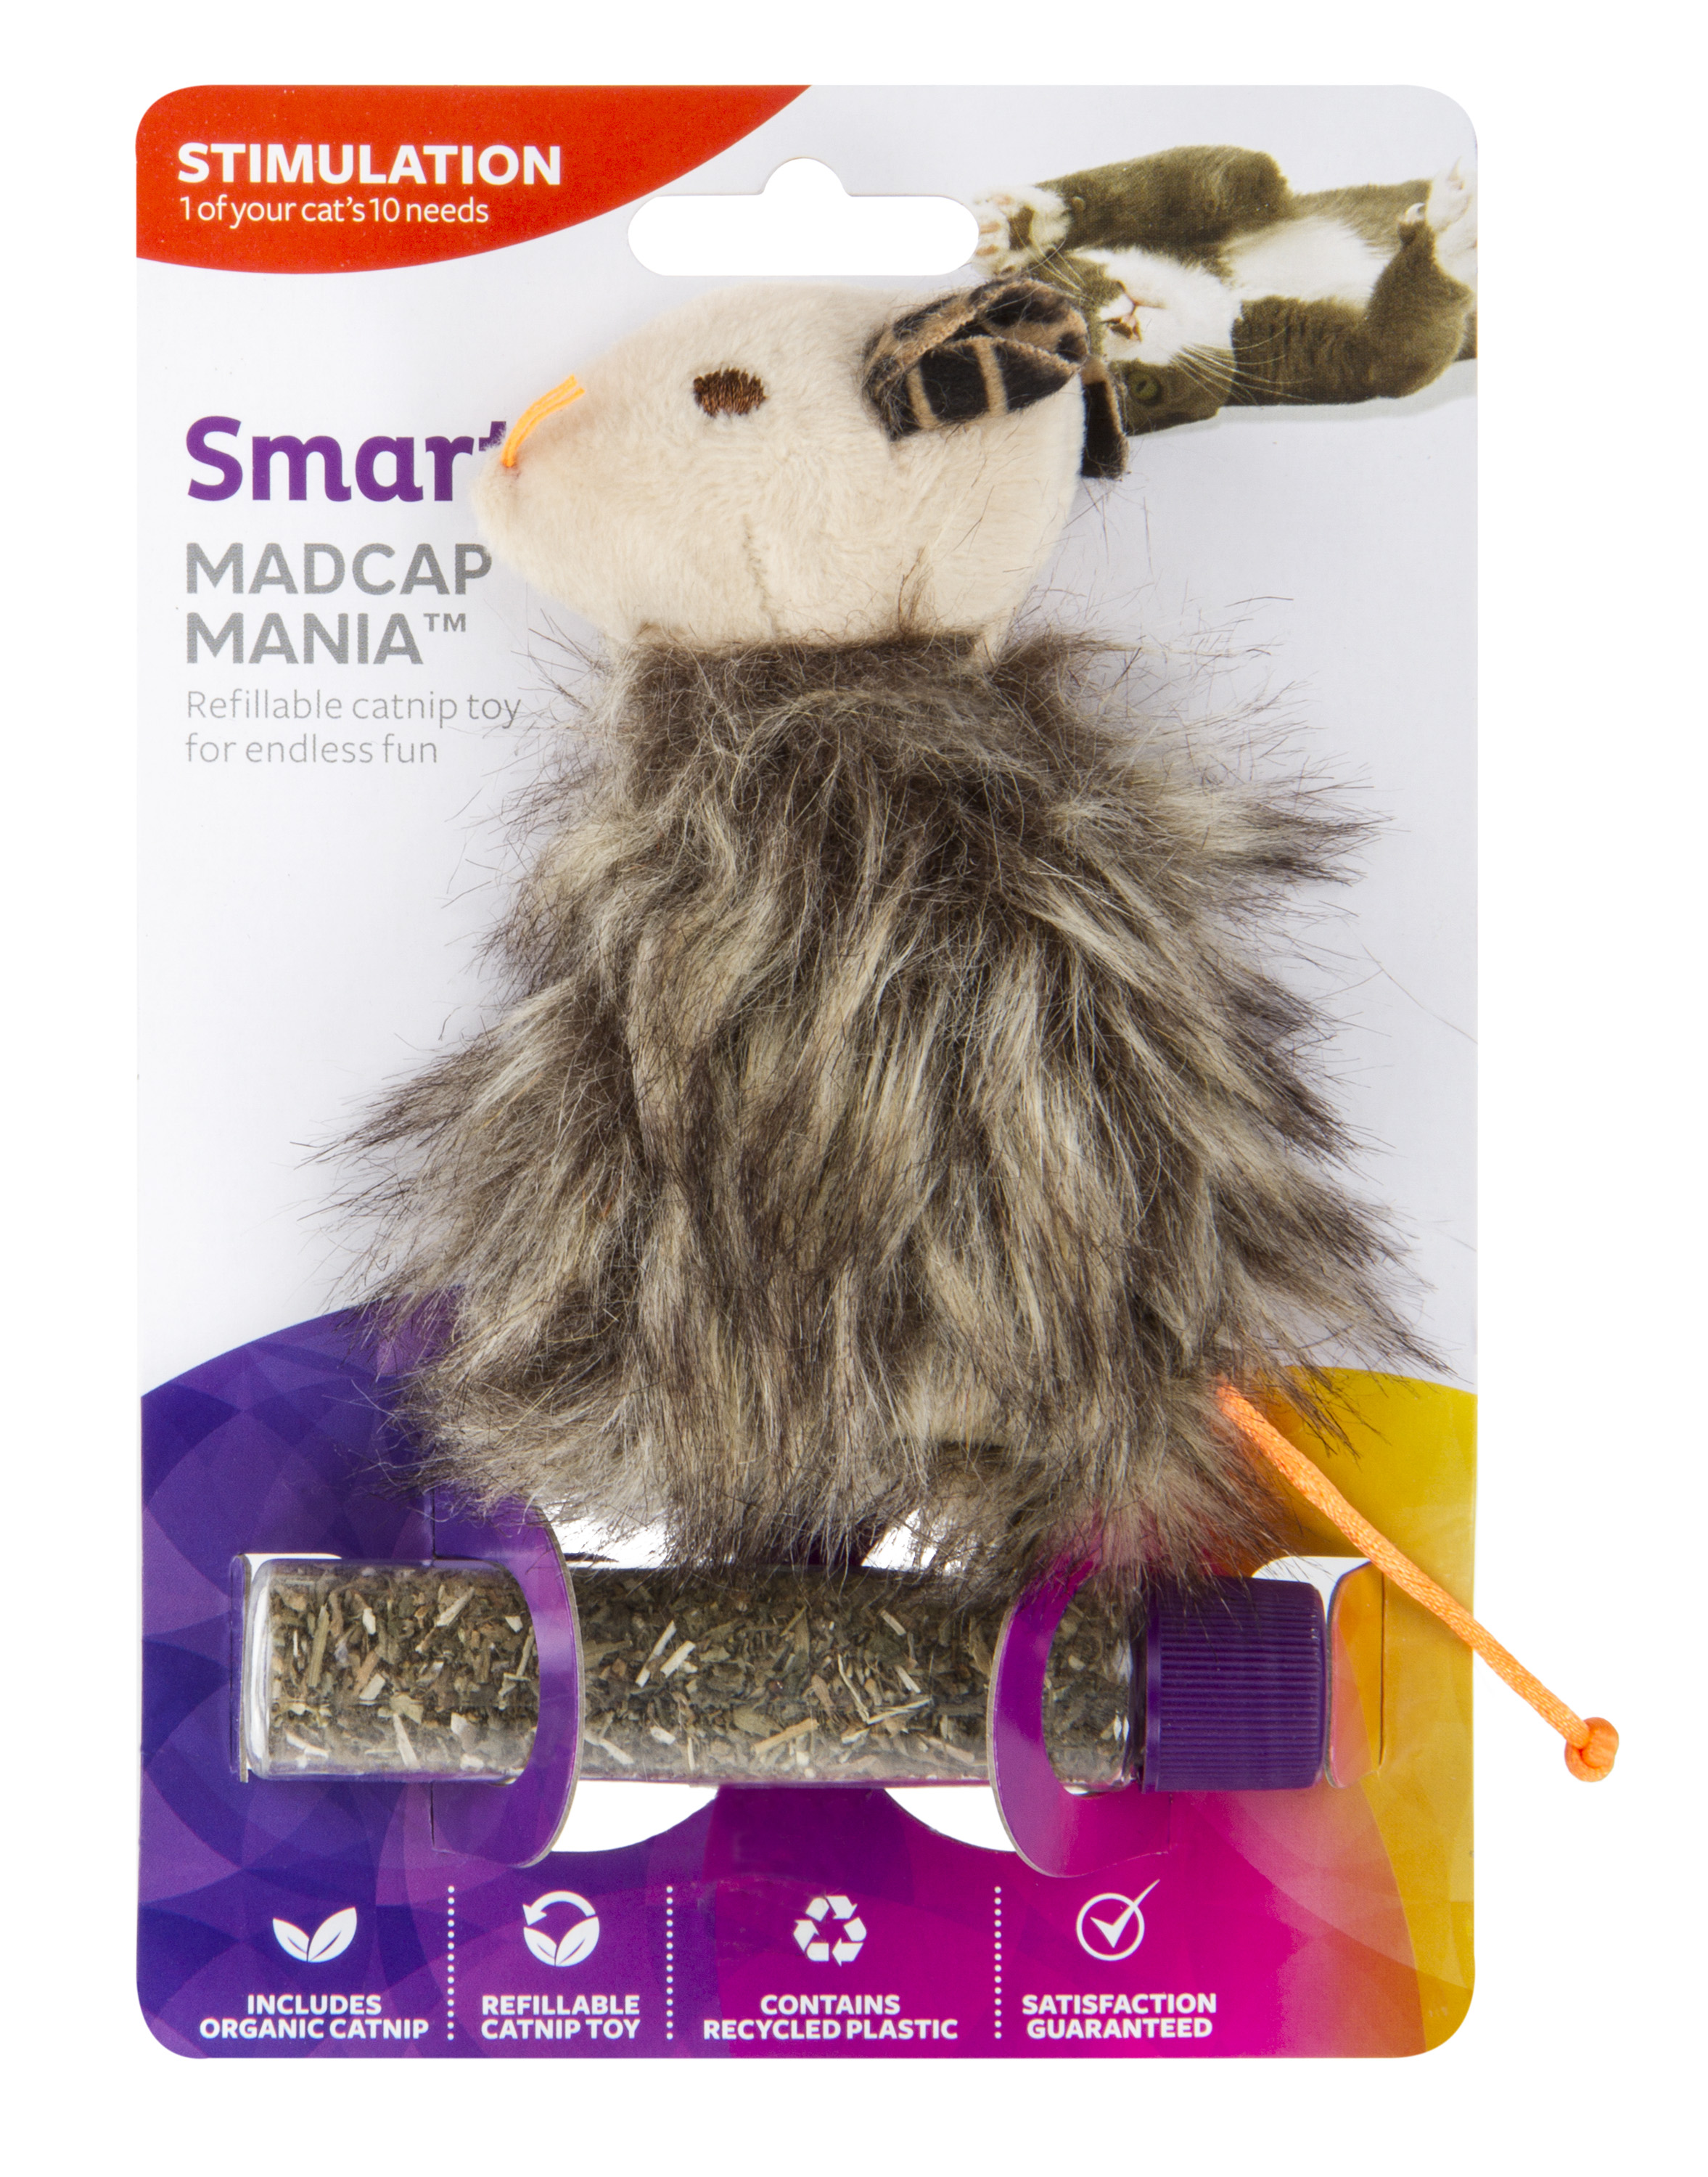 SmartyKat Madcap Mania Refillable Catnip Cat Toy by Worldwise